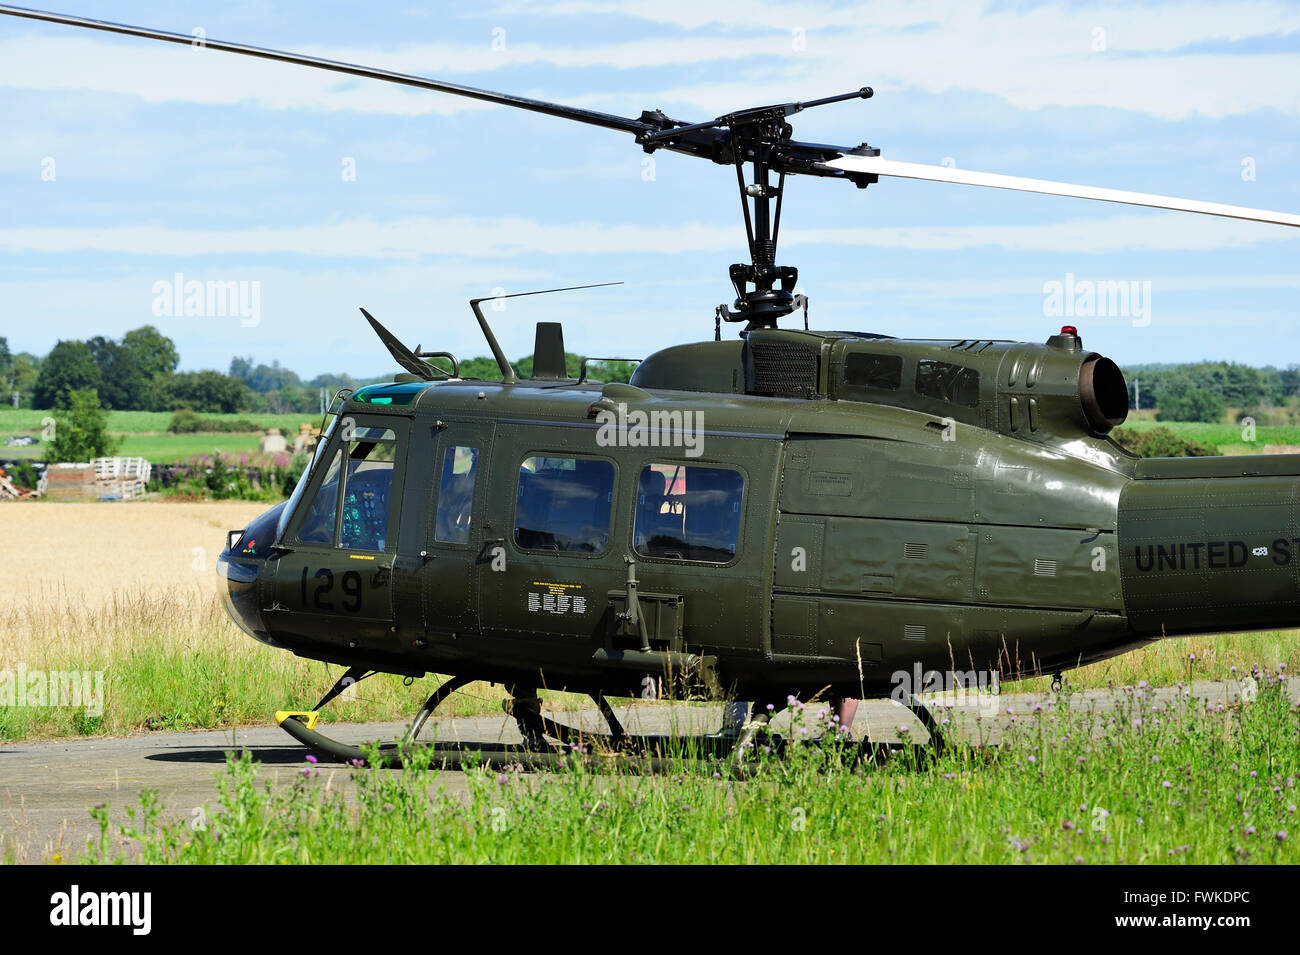 "Huey Helicopter For Sale >> Bell UH-1 Iroquois (nicknamed ""Huey"" during the Vietnam War) on the Stock Photo: 101846148 - Alamy"